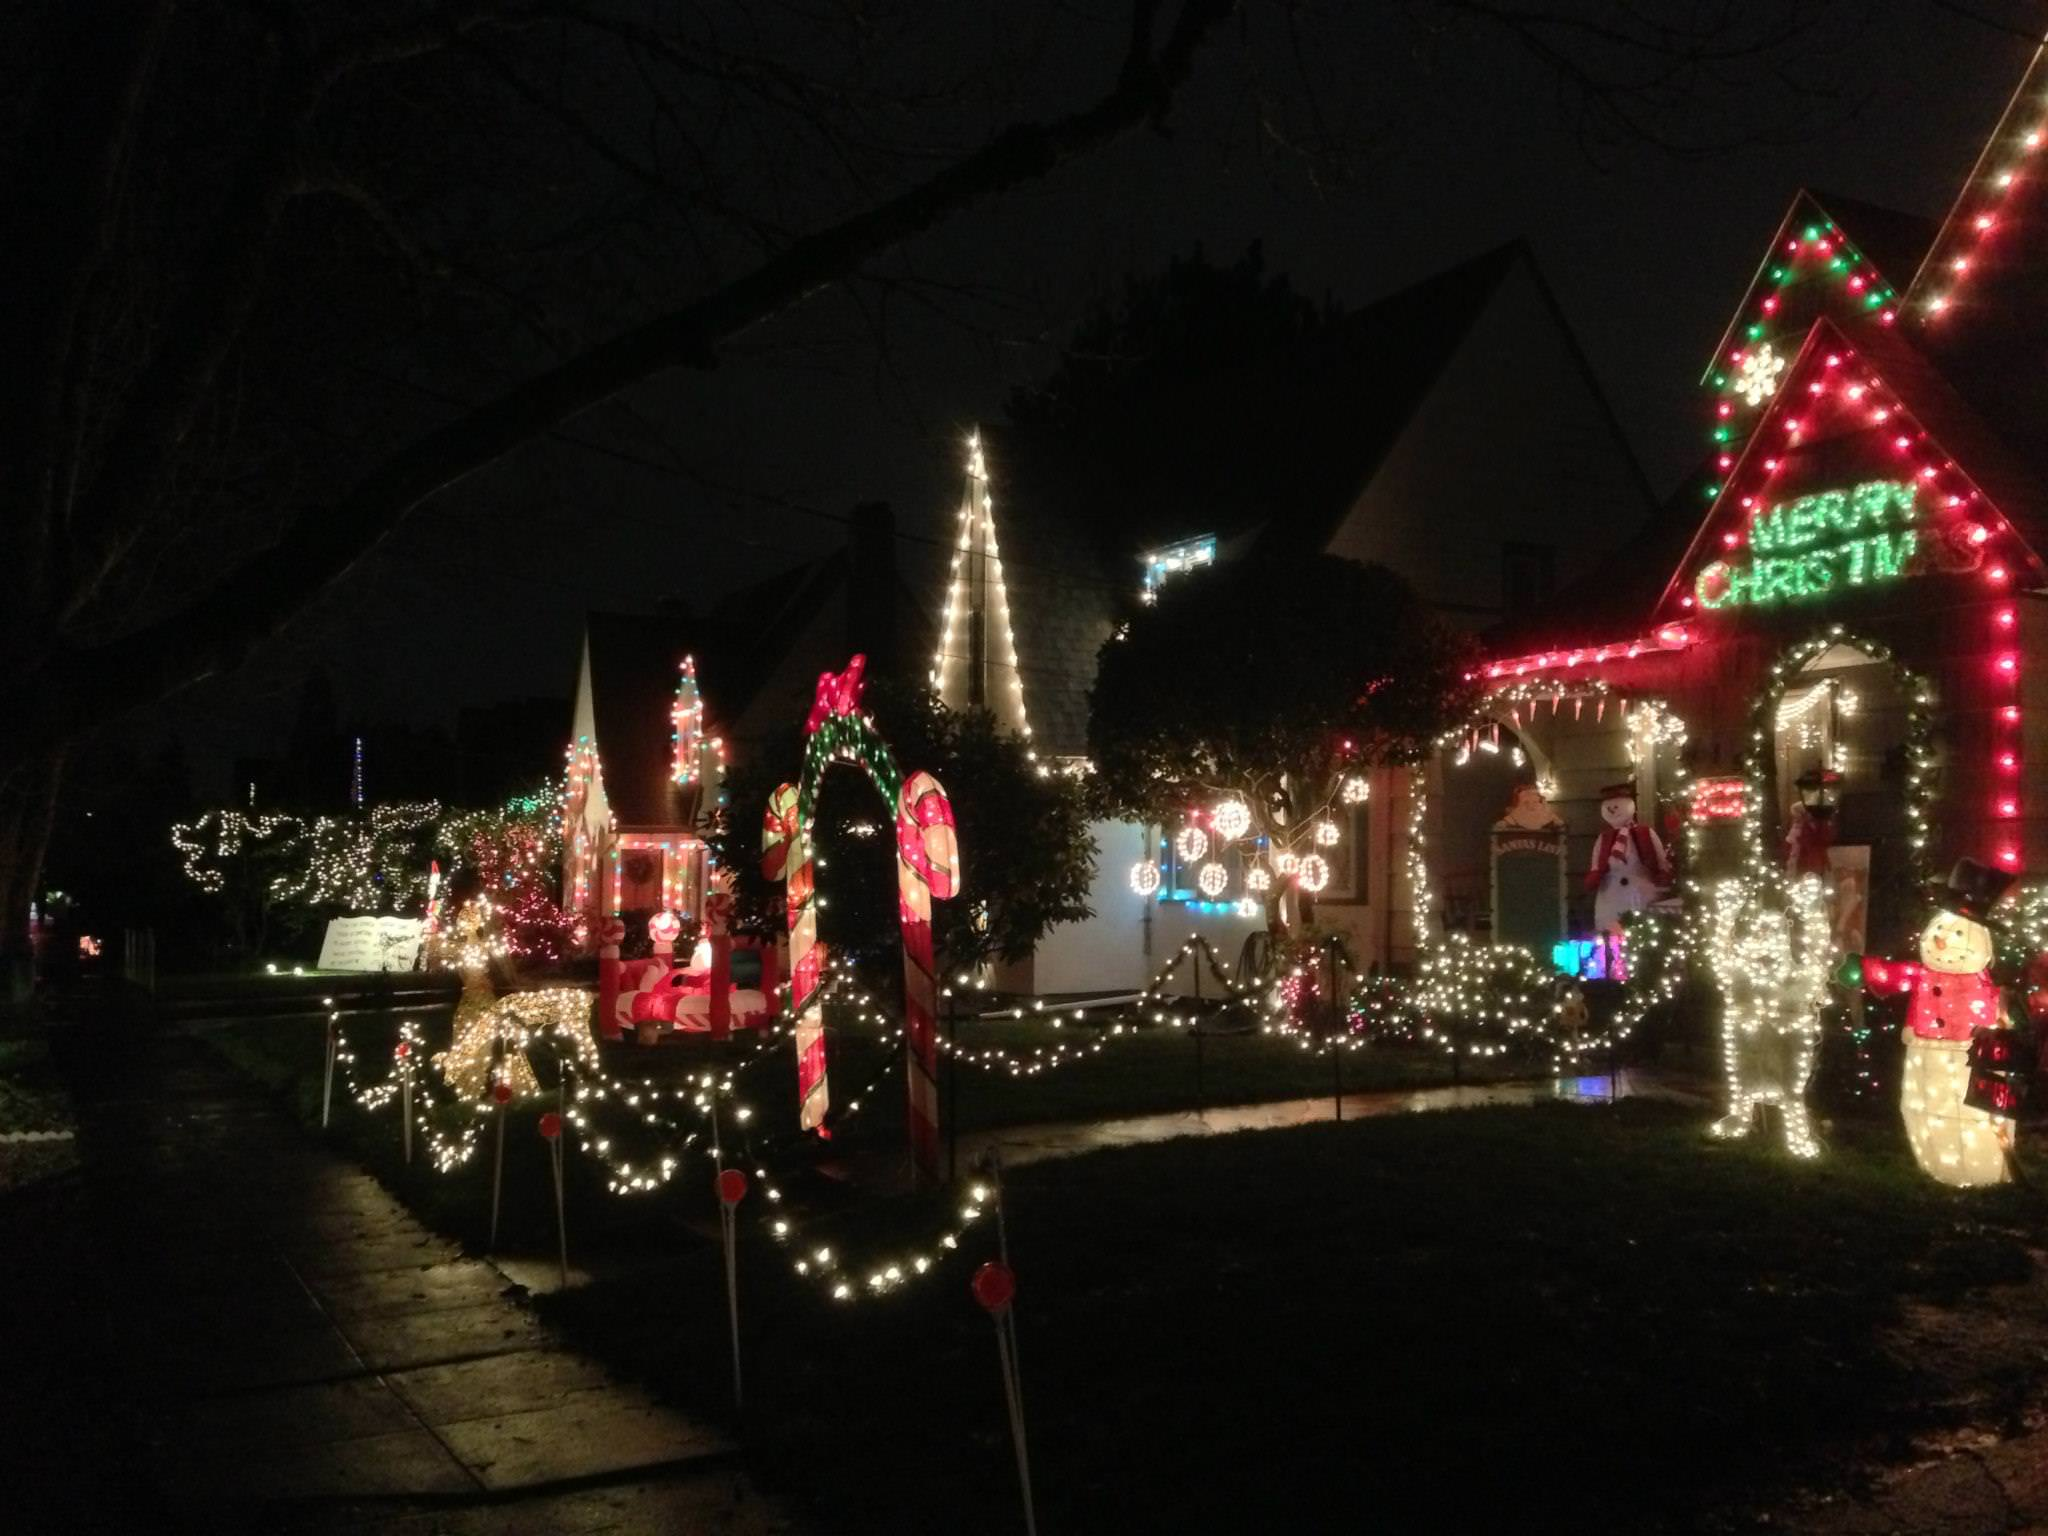 Neighborhood With Christmas Lights